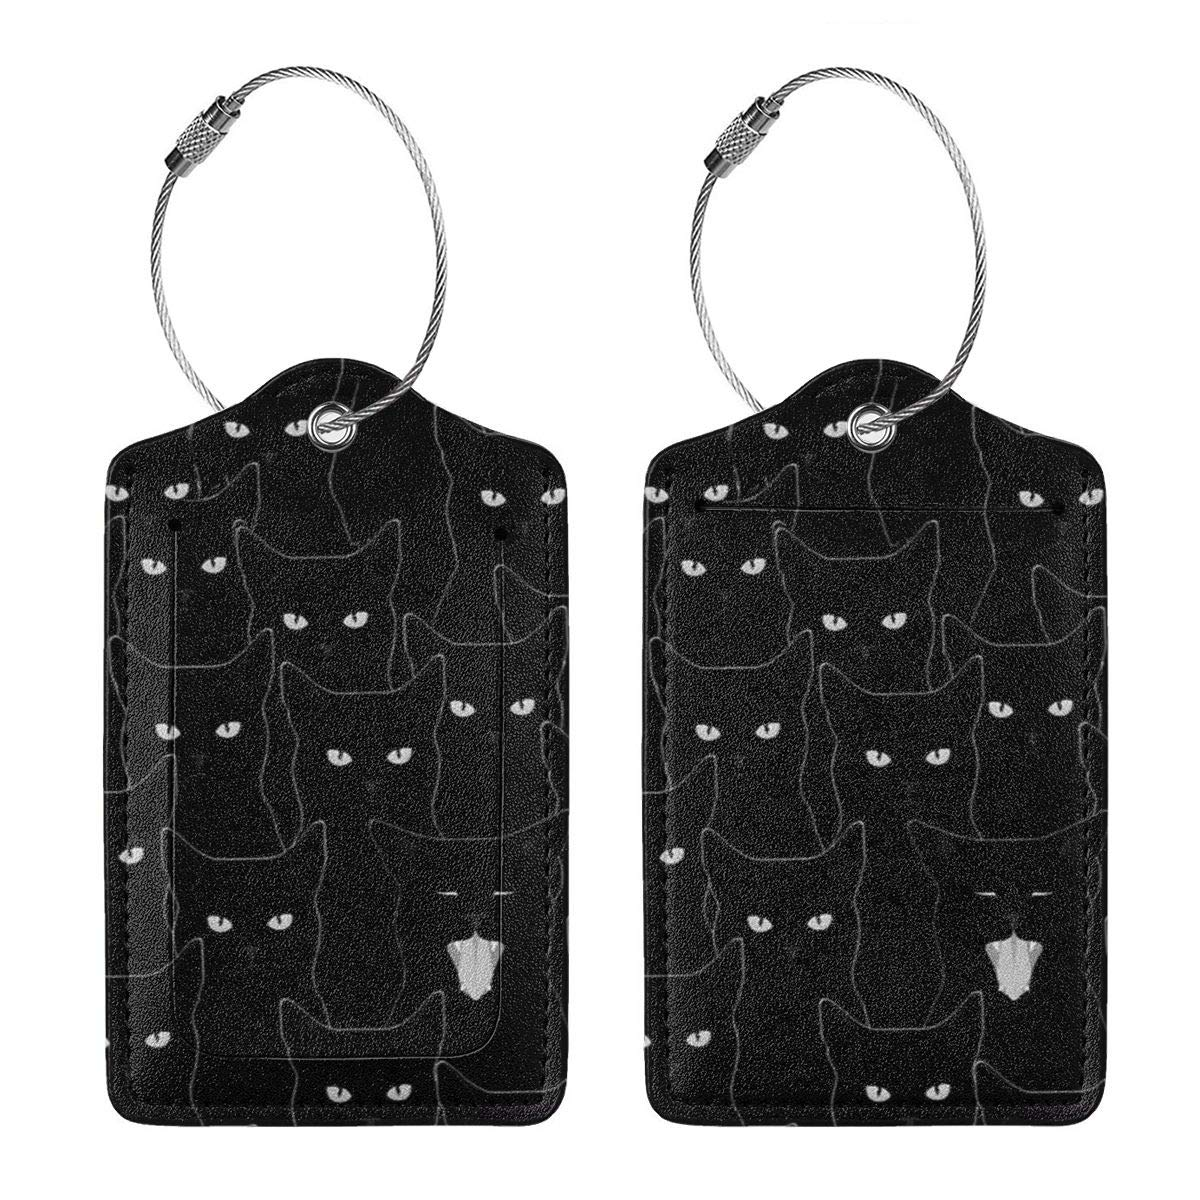 Black Cat Luggage Tag Label Travel Bag Label With Privacy Cover Luggage Tag Leather Personalized Suitcase Tag Travel Accessories